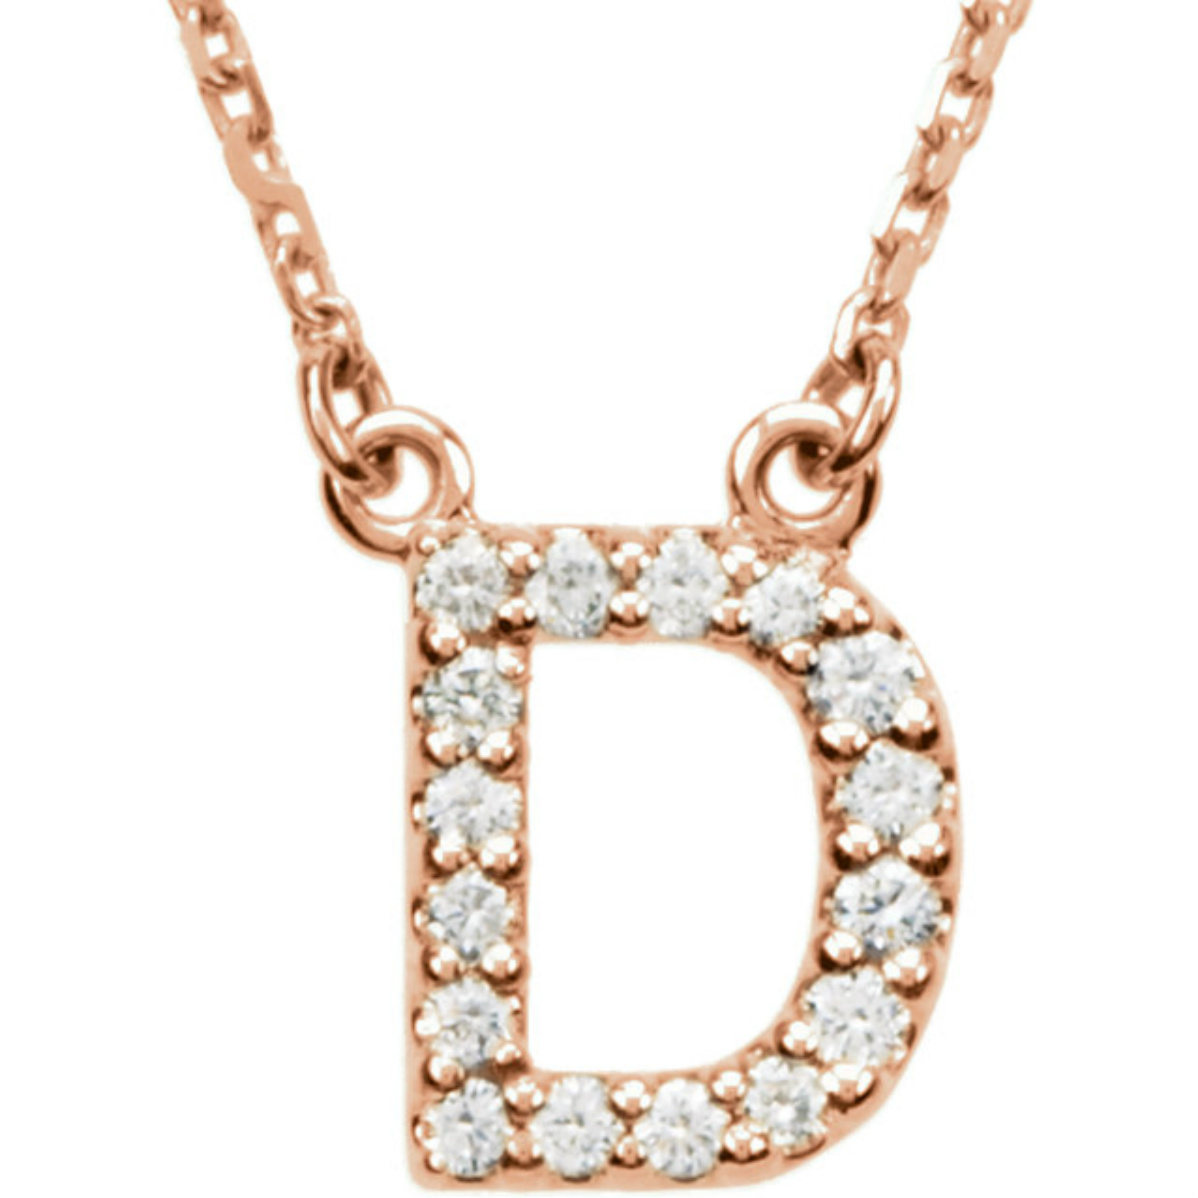 Diamond initial necklaces boomer style magazineboomer style magazine diamond d initial 14k rose gold necklace 16 mozeypictures Image collections